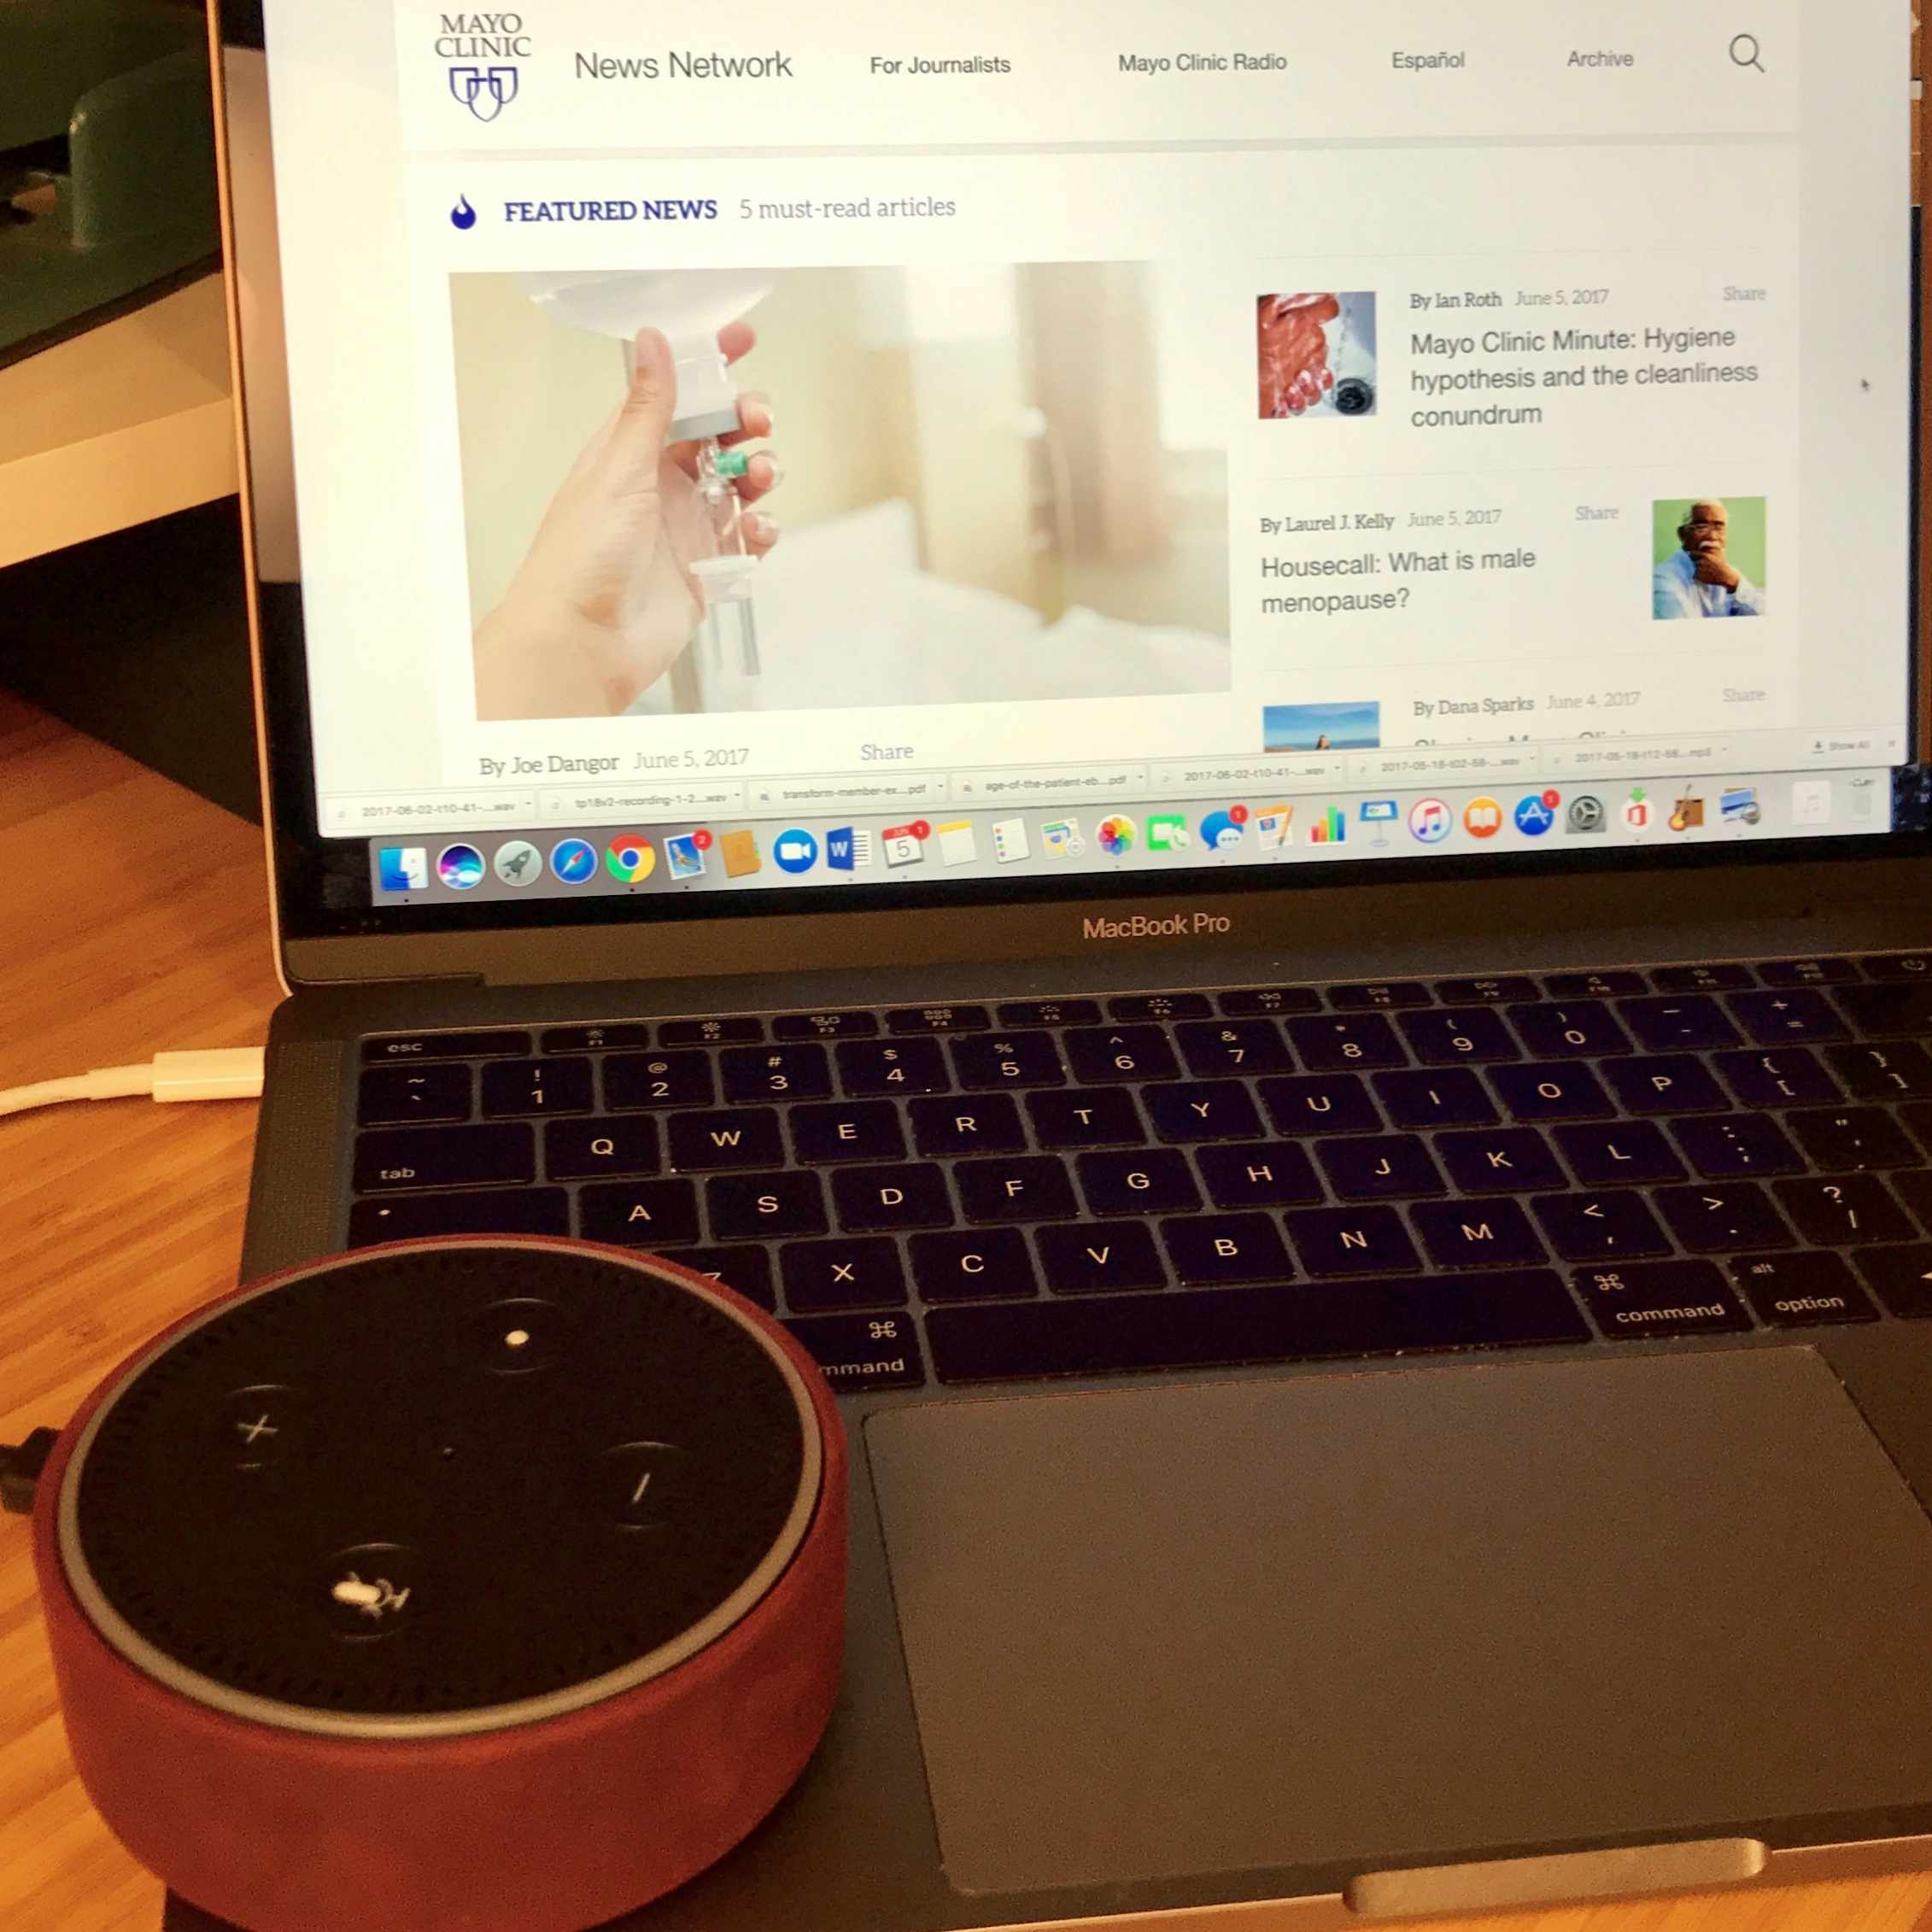 An Amazon Echo Dot rests on a laptop computer displaying an image of the Mayo Clinic News Network